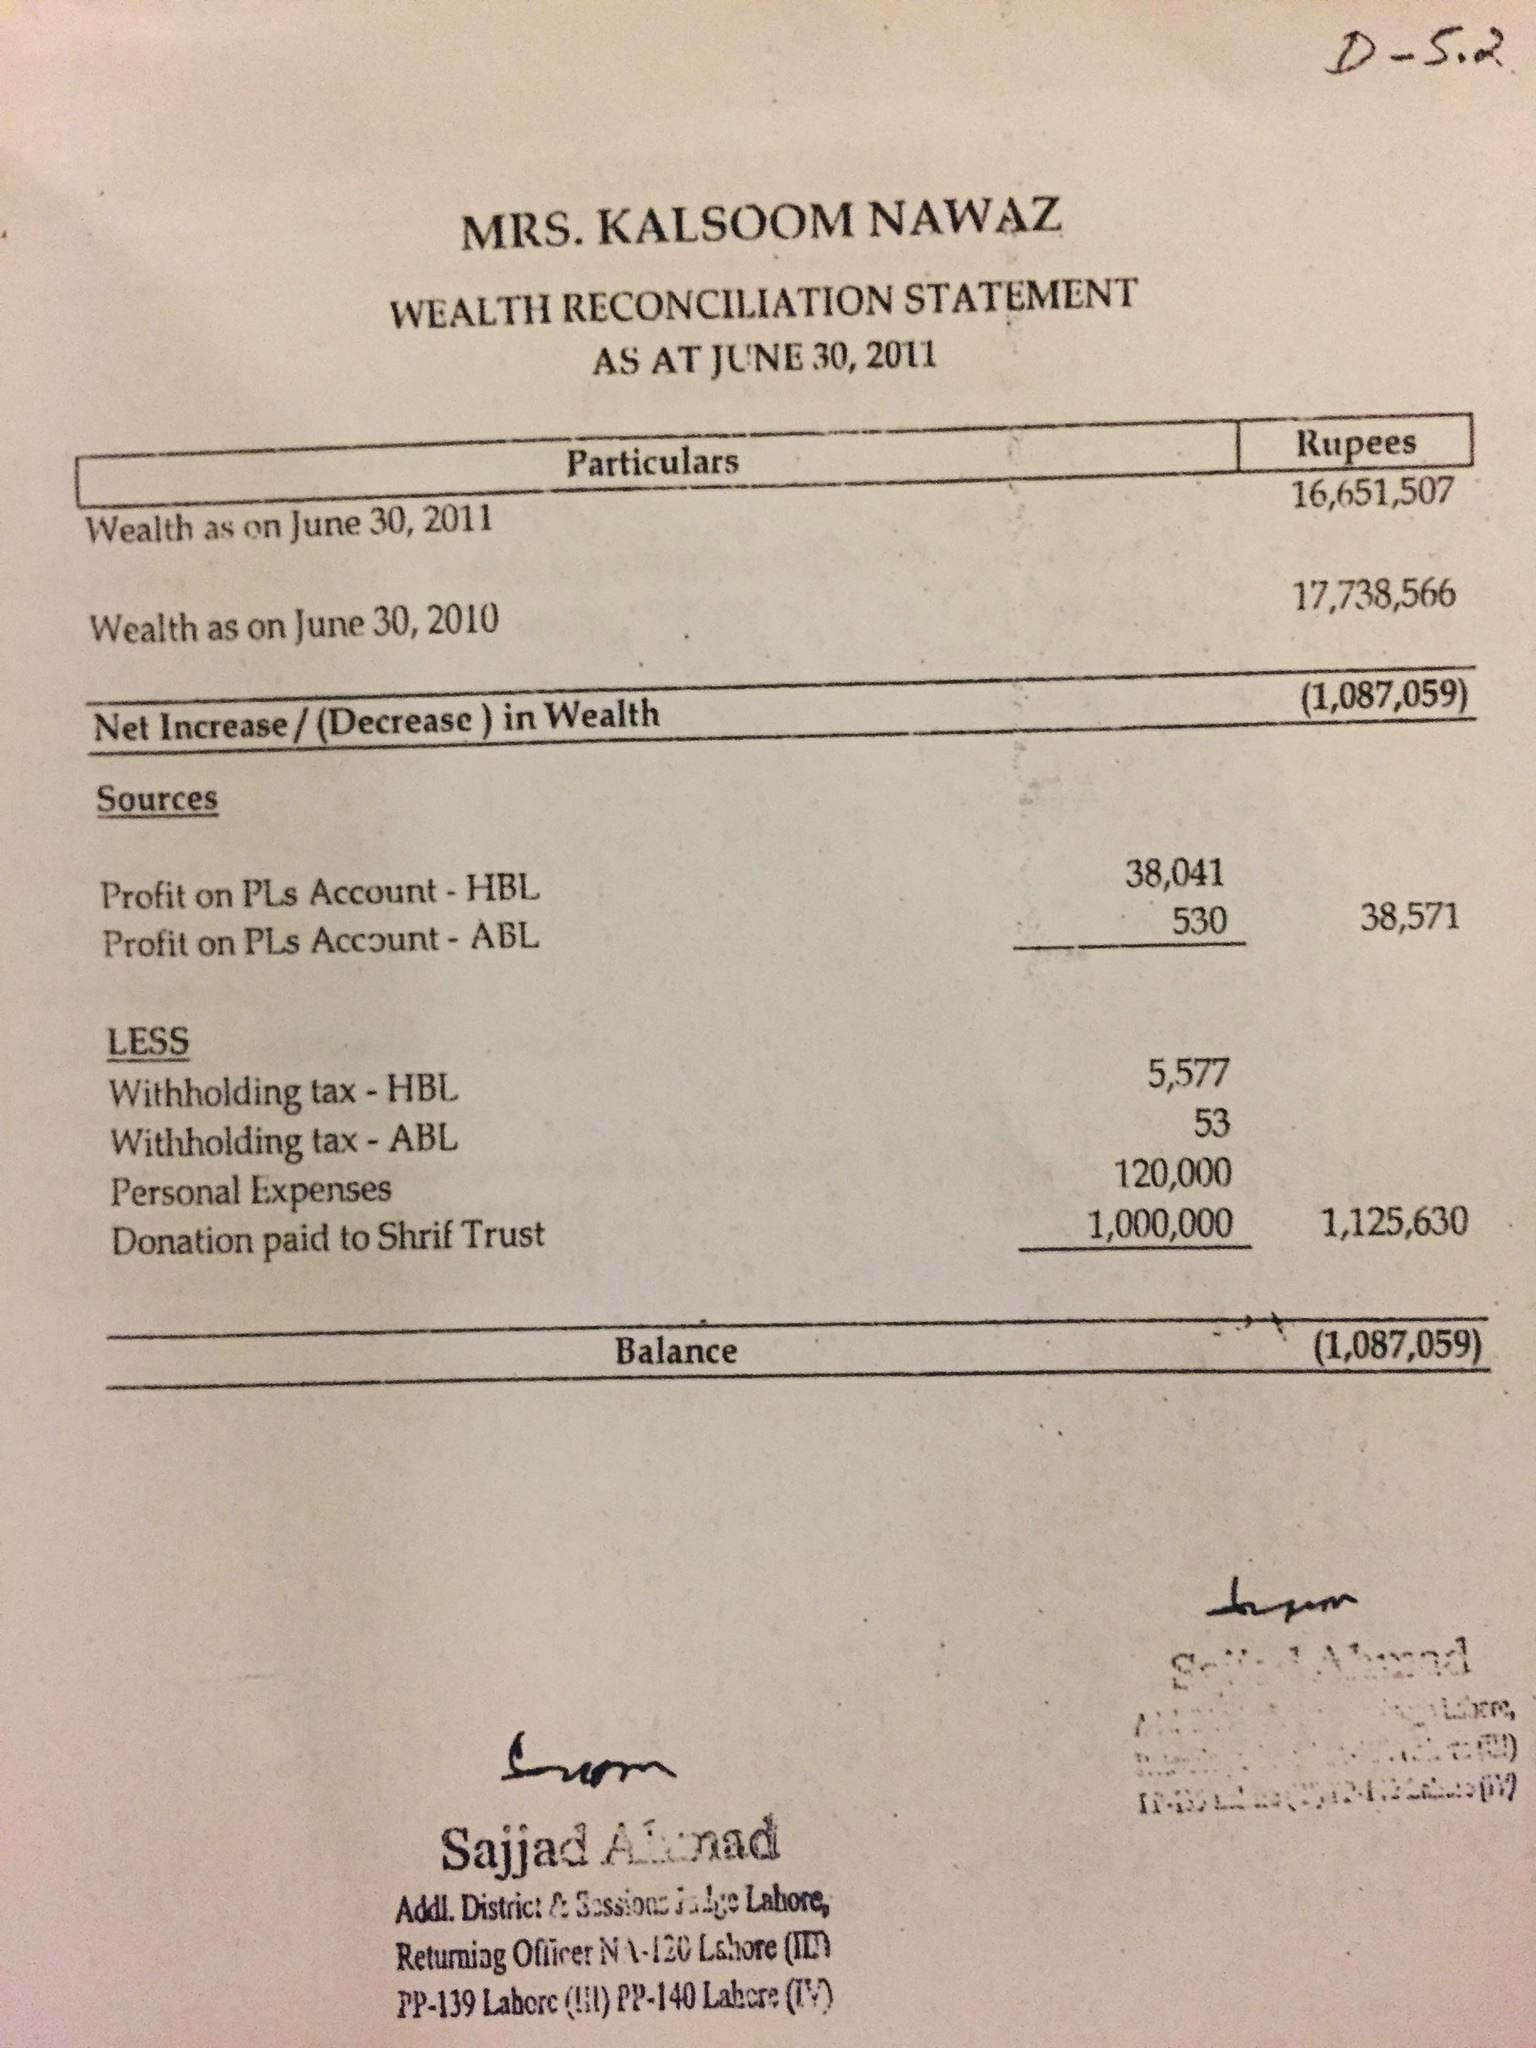 Wealth Reconciliation Statement shows Kulsoom Nawaz's gift to the Sharif Trust.